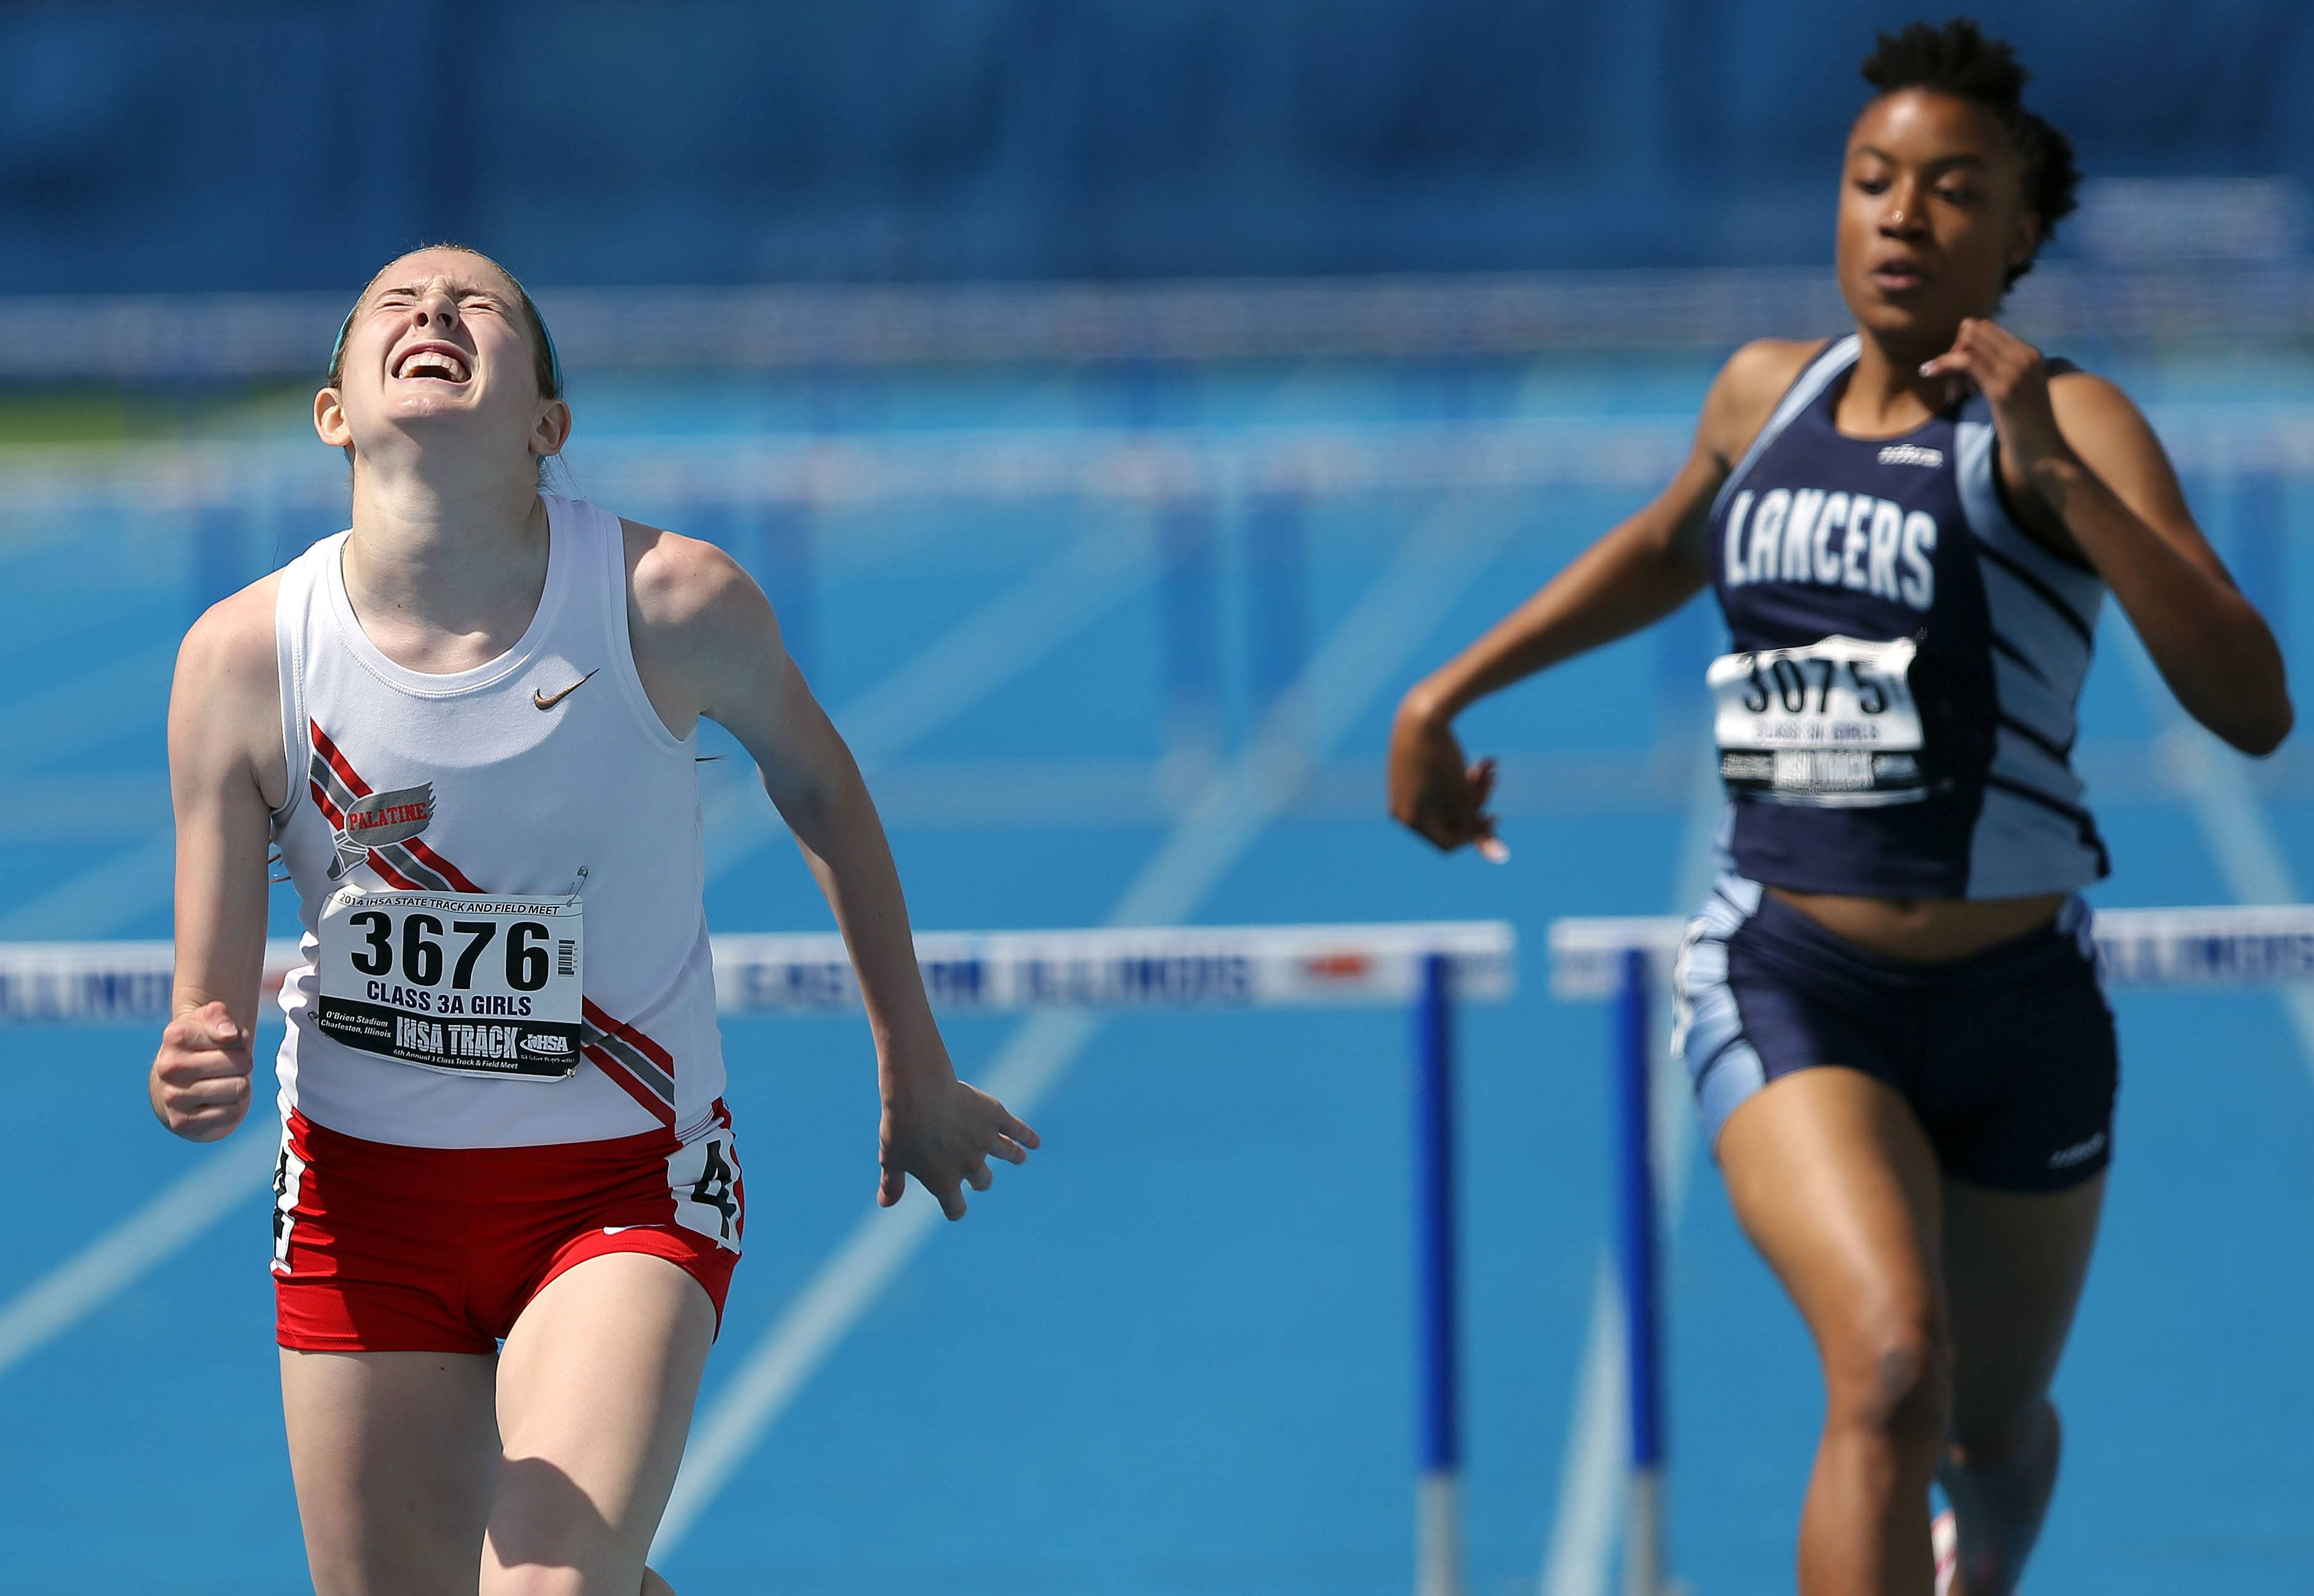 Palatine's Caitlin Riedy pushes to the finish in the 300-meter low hurdles during the Class 3A prelims of the girls track and field state meet at Eastern Illinois University in Charleston on Friday.